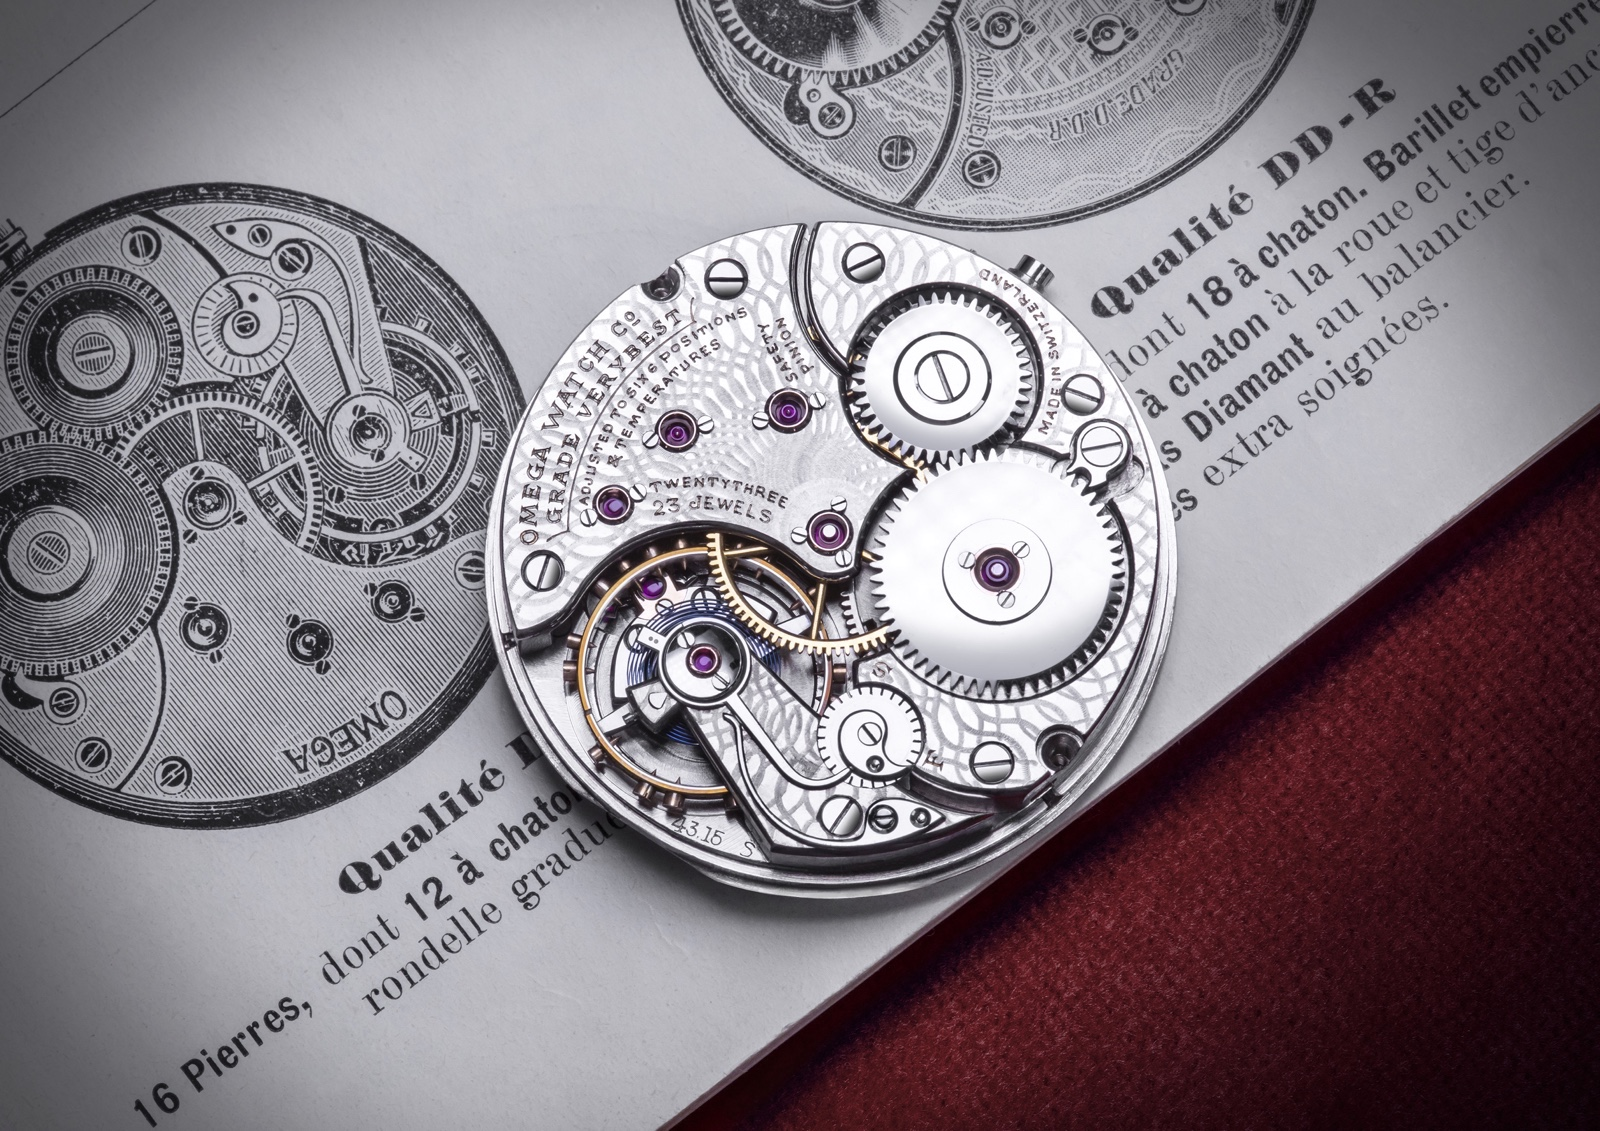 Calibre Omega 125 Aniversario Movimiento Decorado